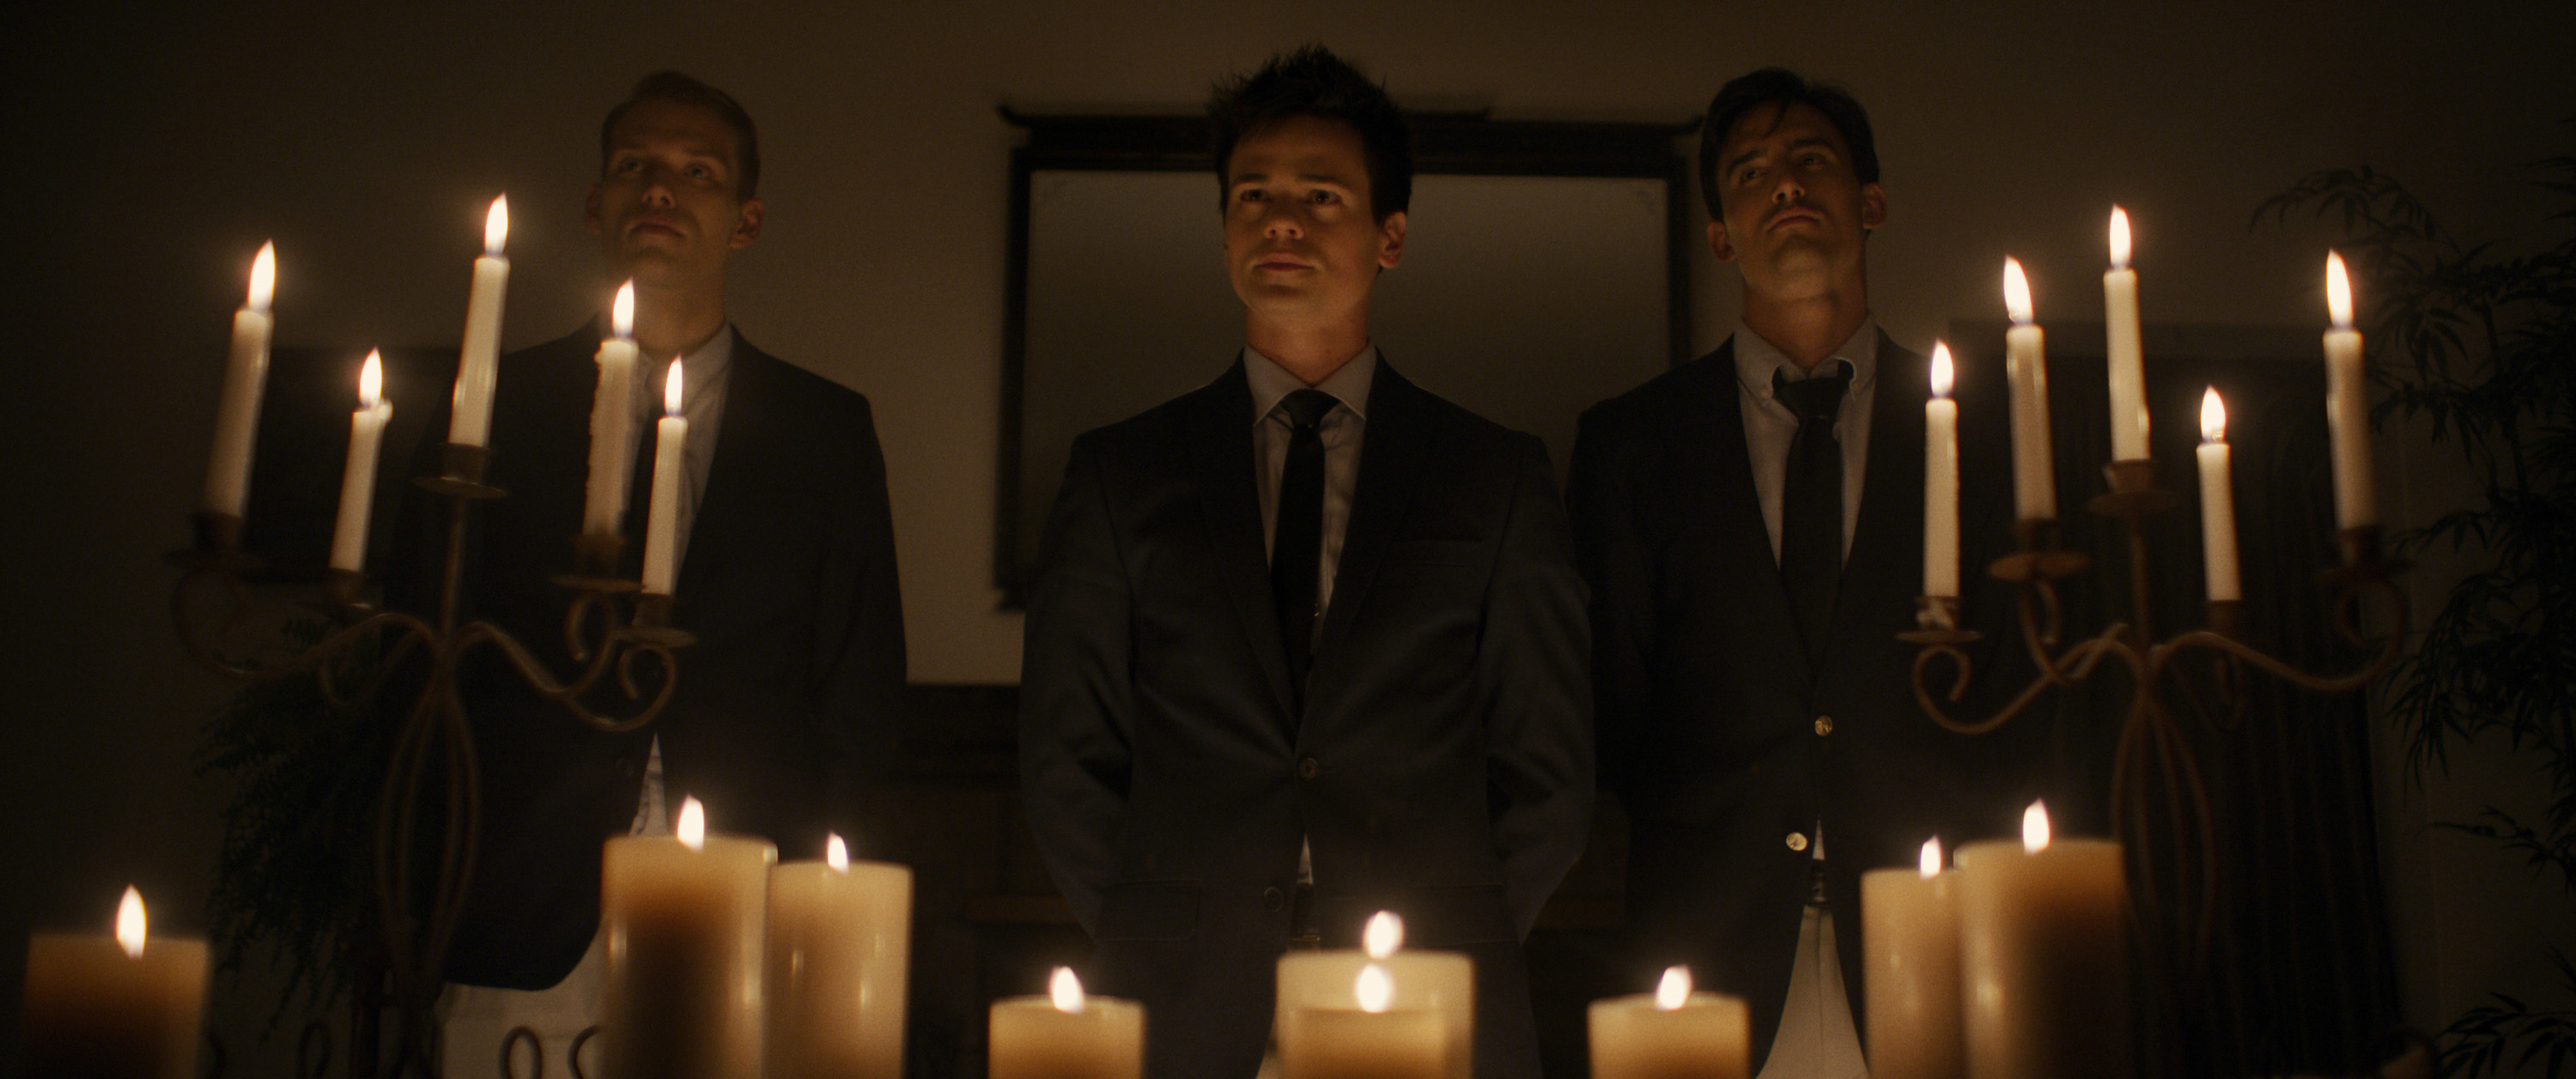 Cameron Cowperthwaite, Aaron Dalla Villa, and Jesse Pimentel stand behind a number of candles